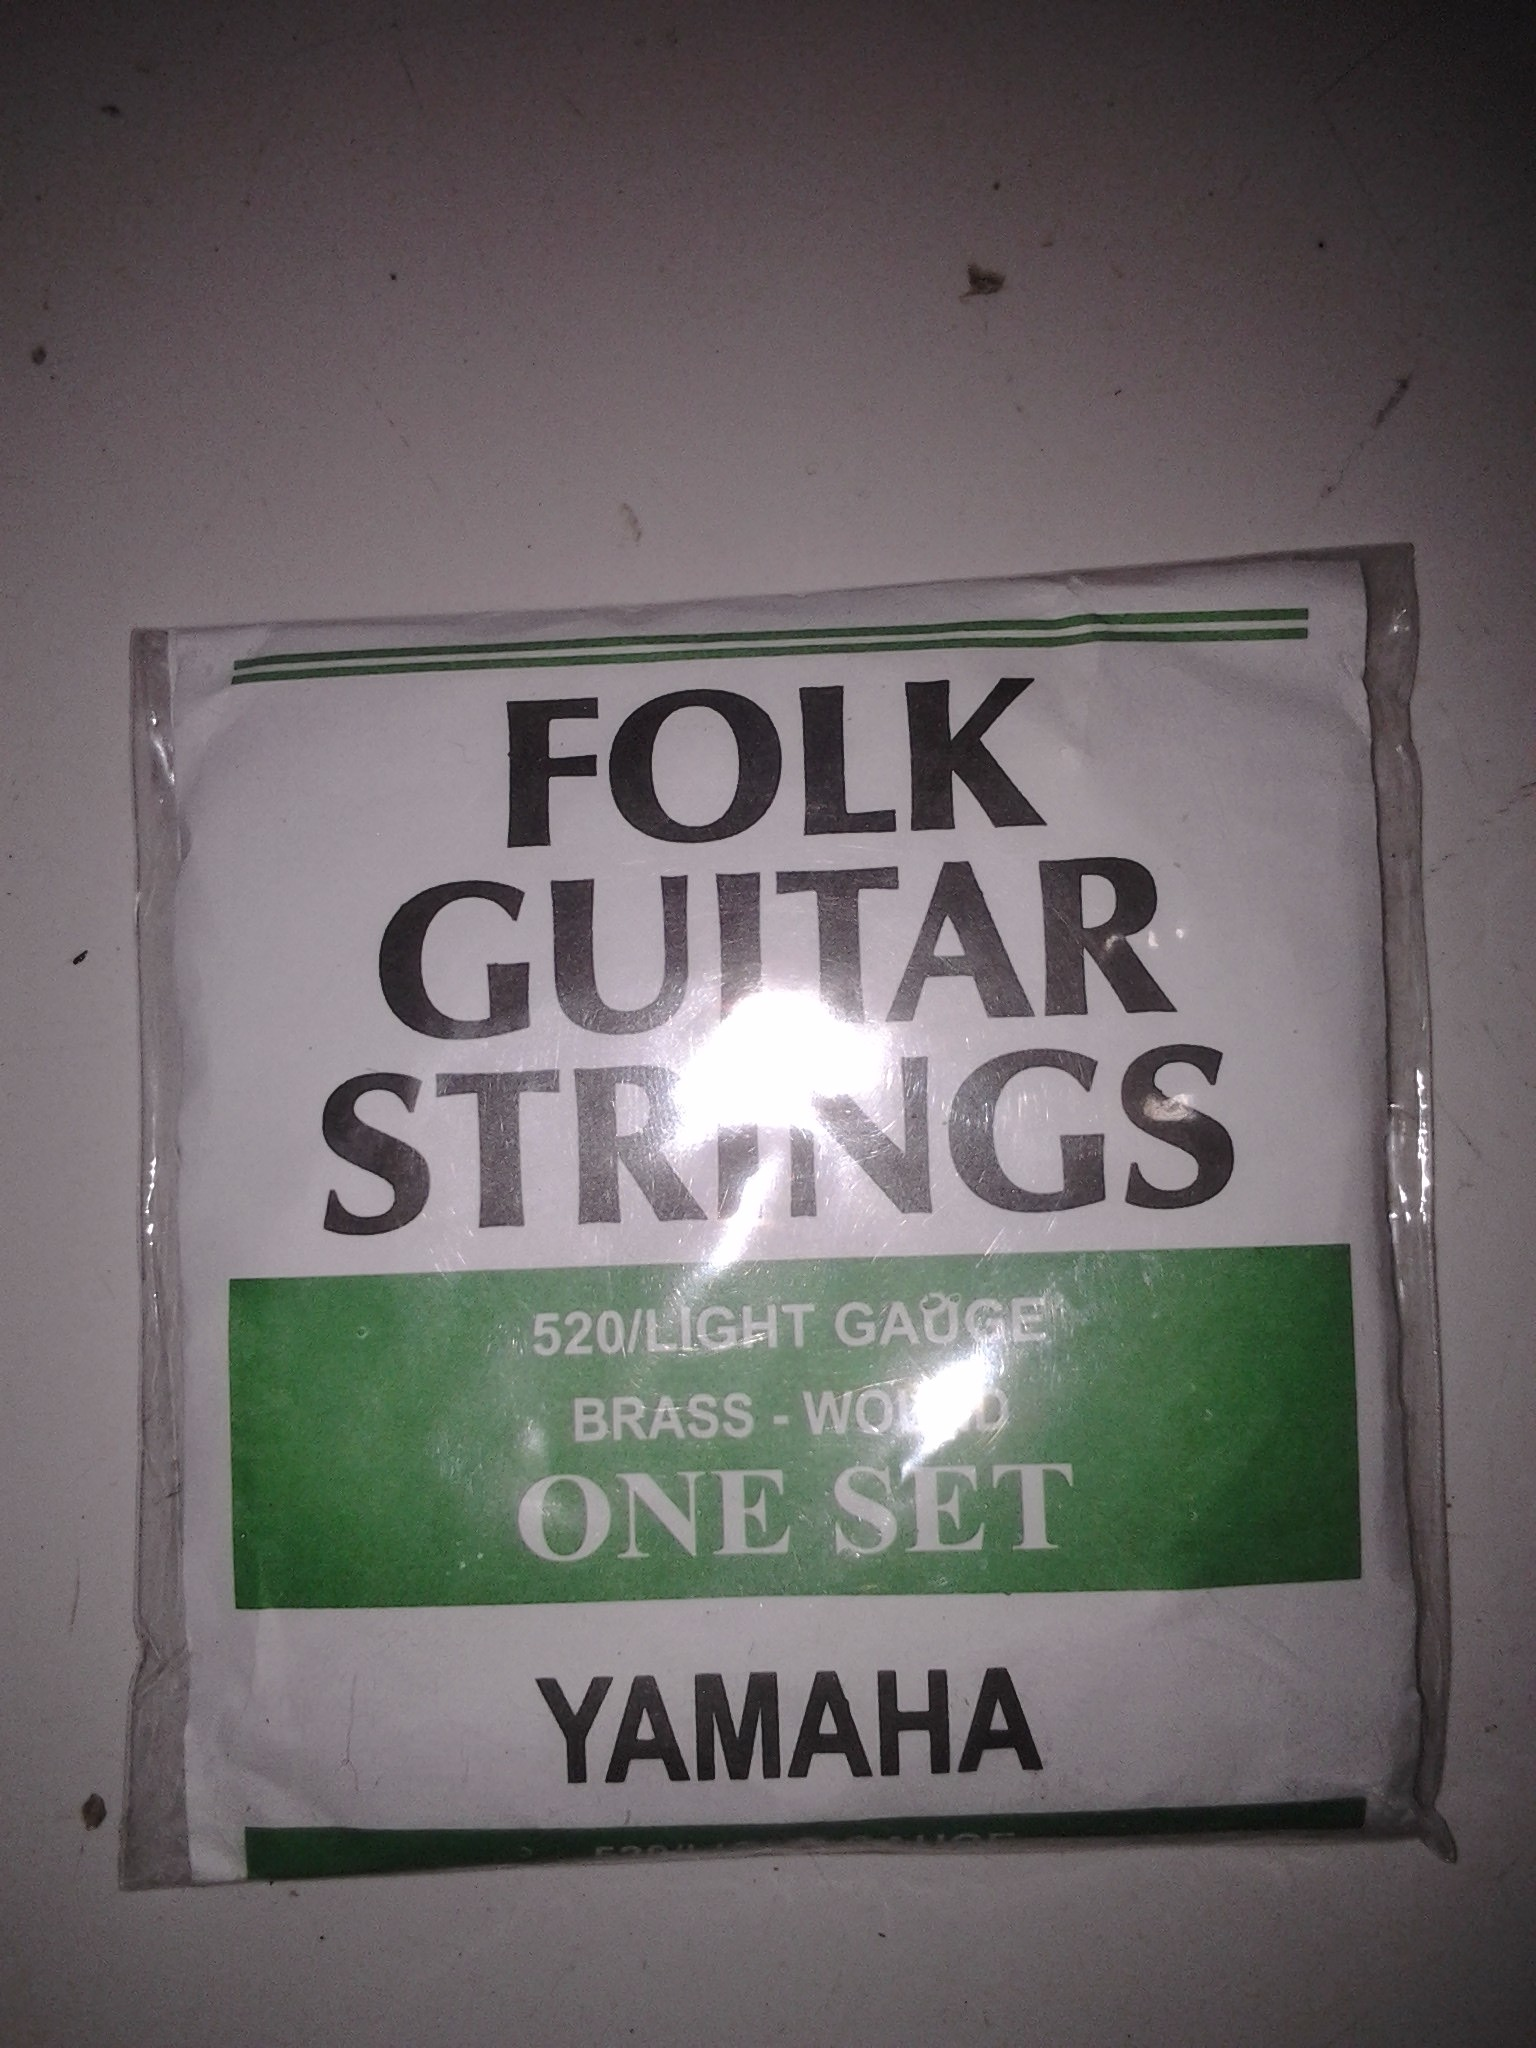 Senar Gitar Akustik Yamaha Folk Guitar Strings (1 set)